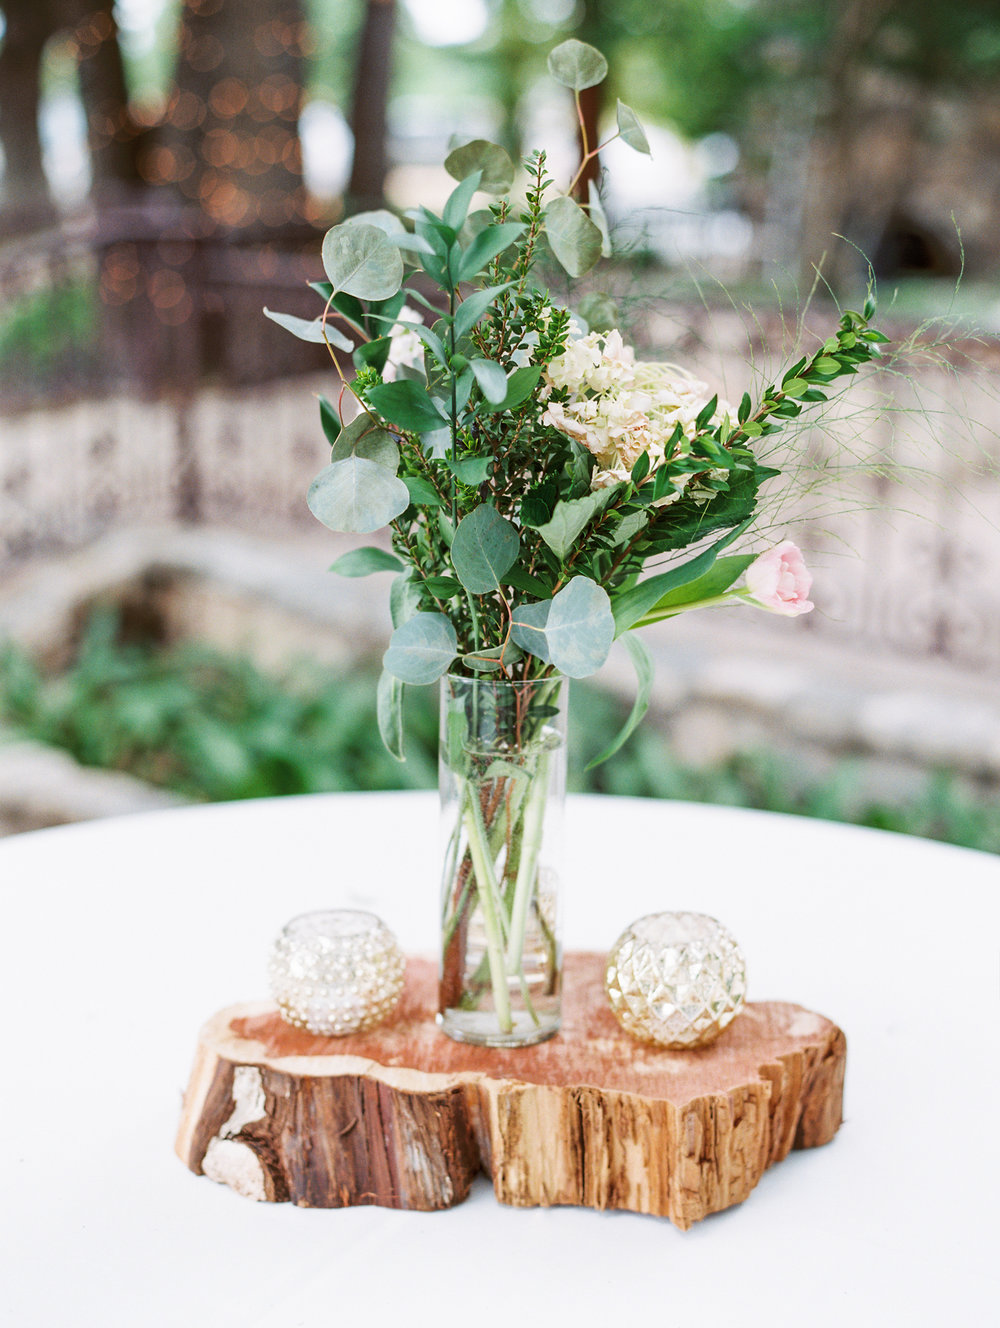 Elegant Spring Vineyard Wedding | Film Wedding Photographer | Austin Wedding Photographer | Elegant Rustic Wedding Decor | Britni Dean Photography // britnidean.com